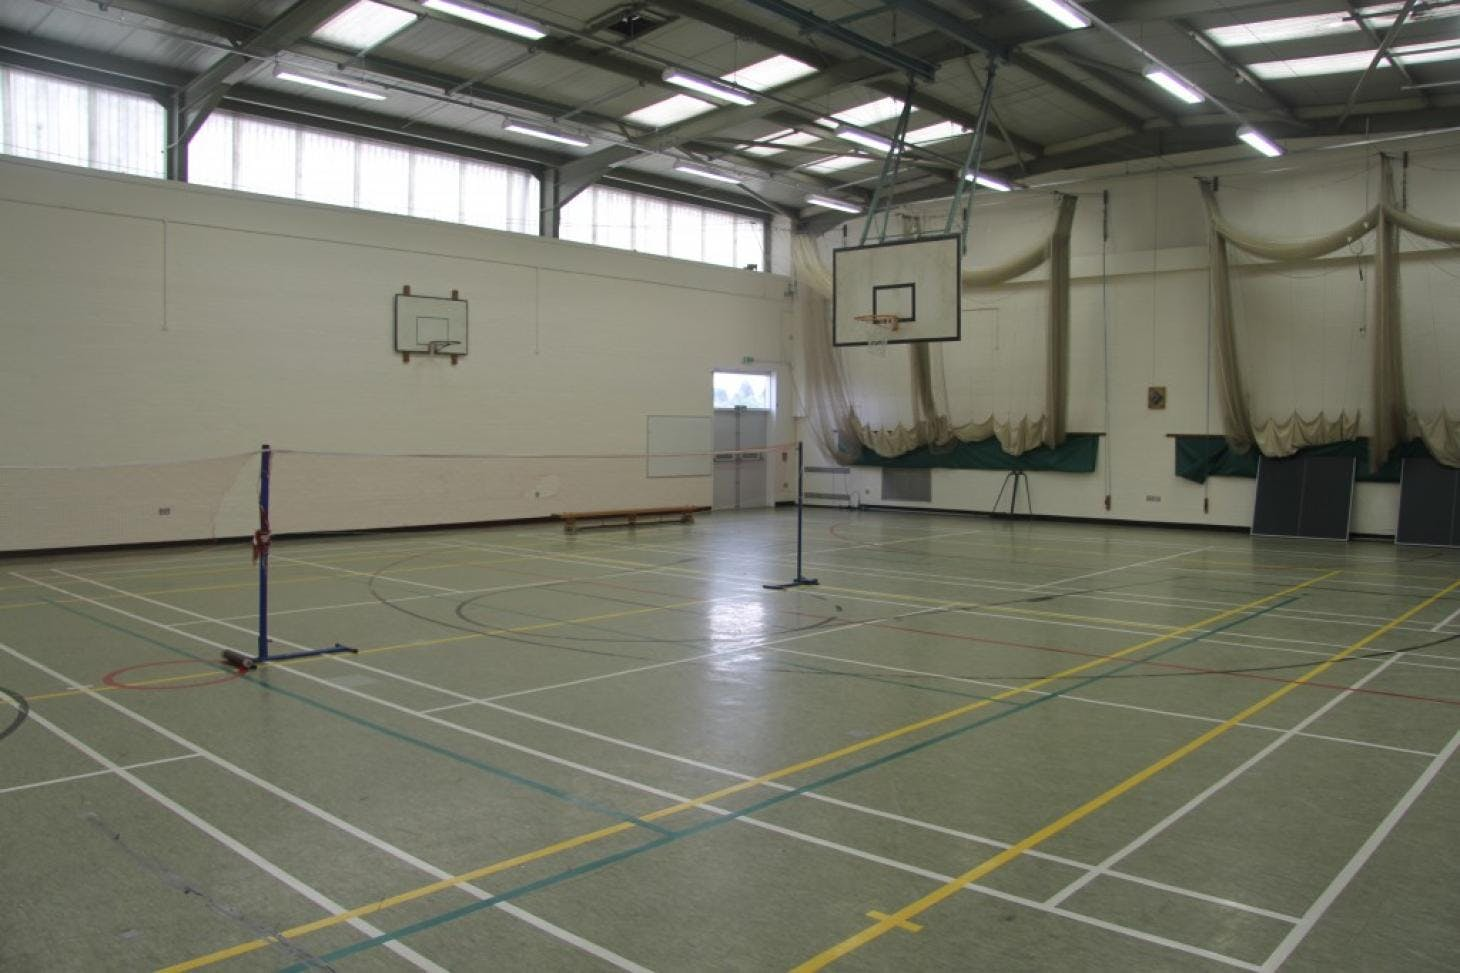 Ashcroft High School Indoor basketball court